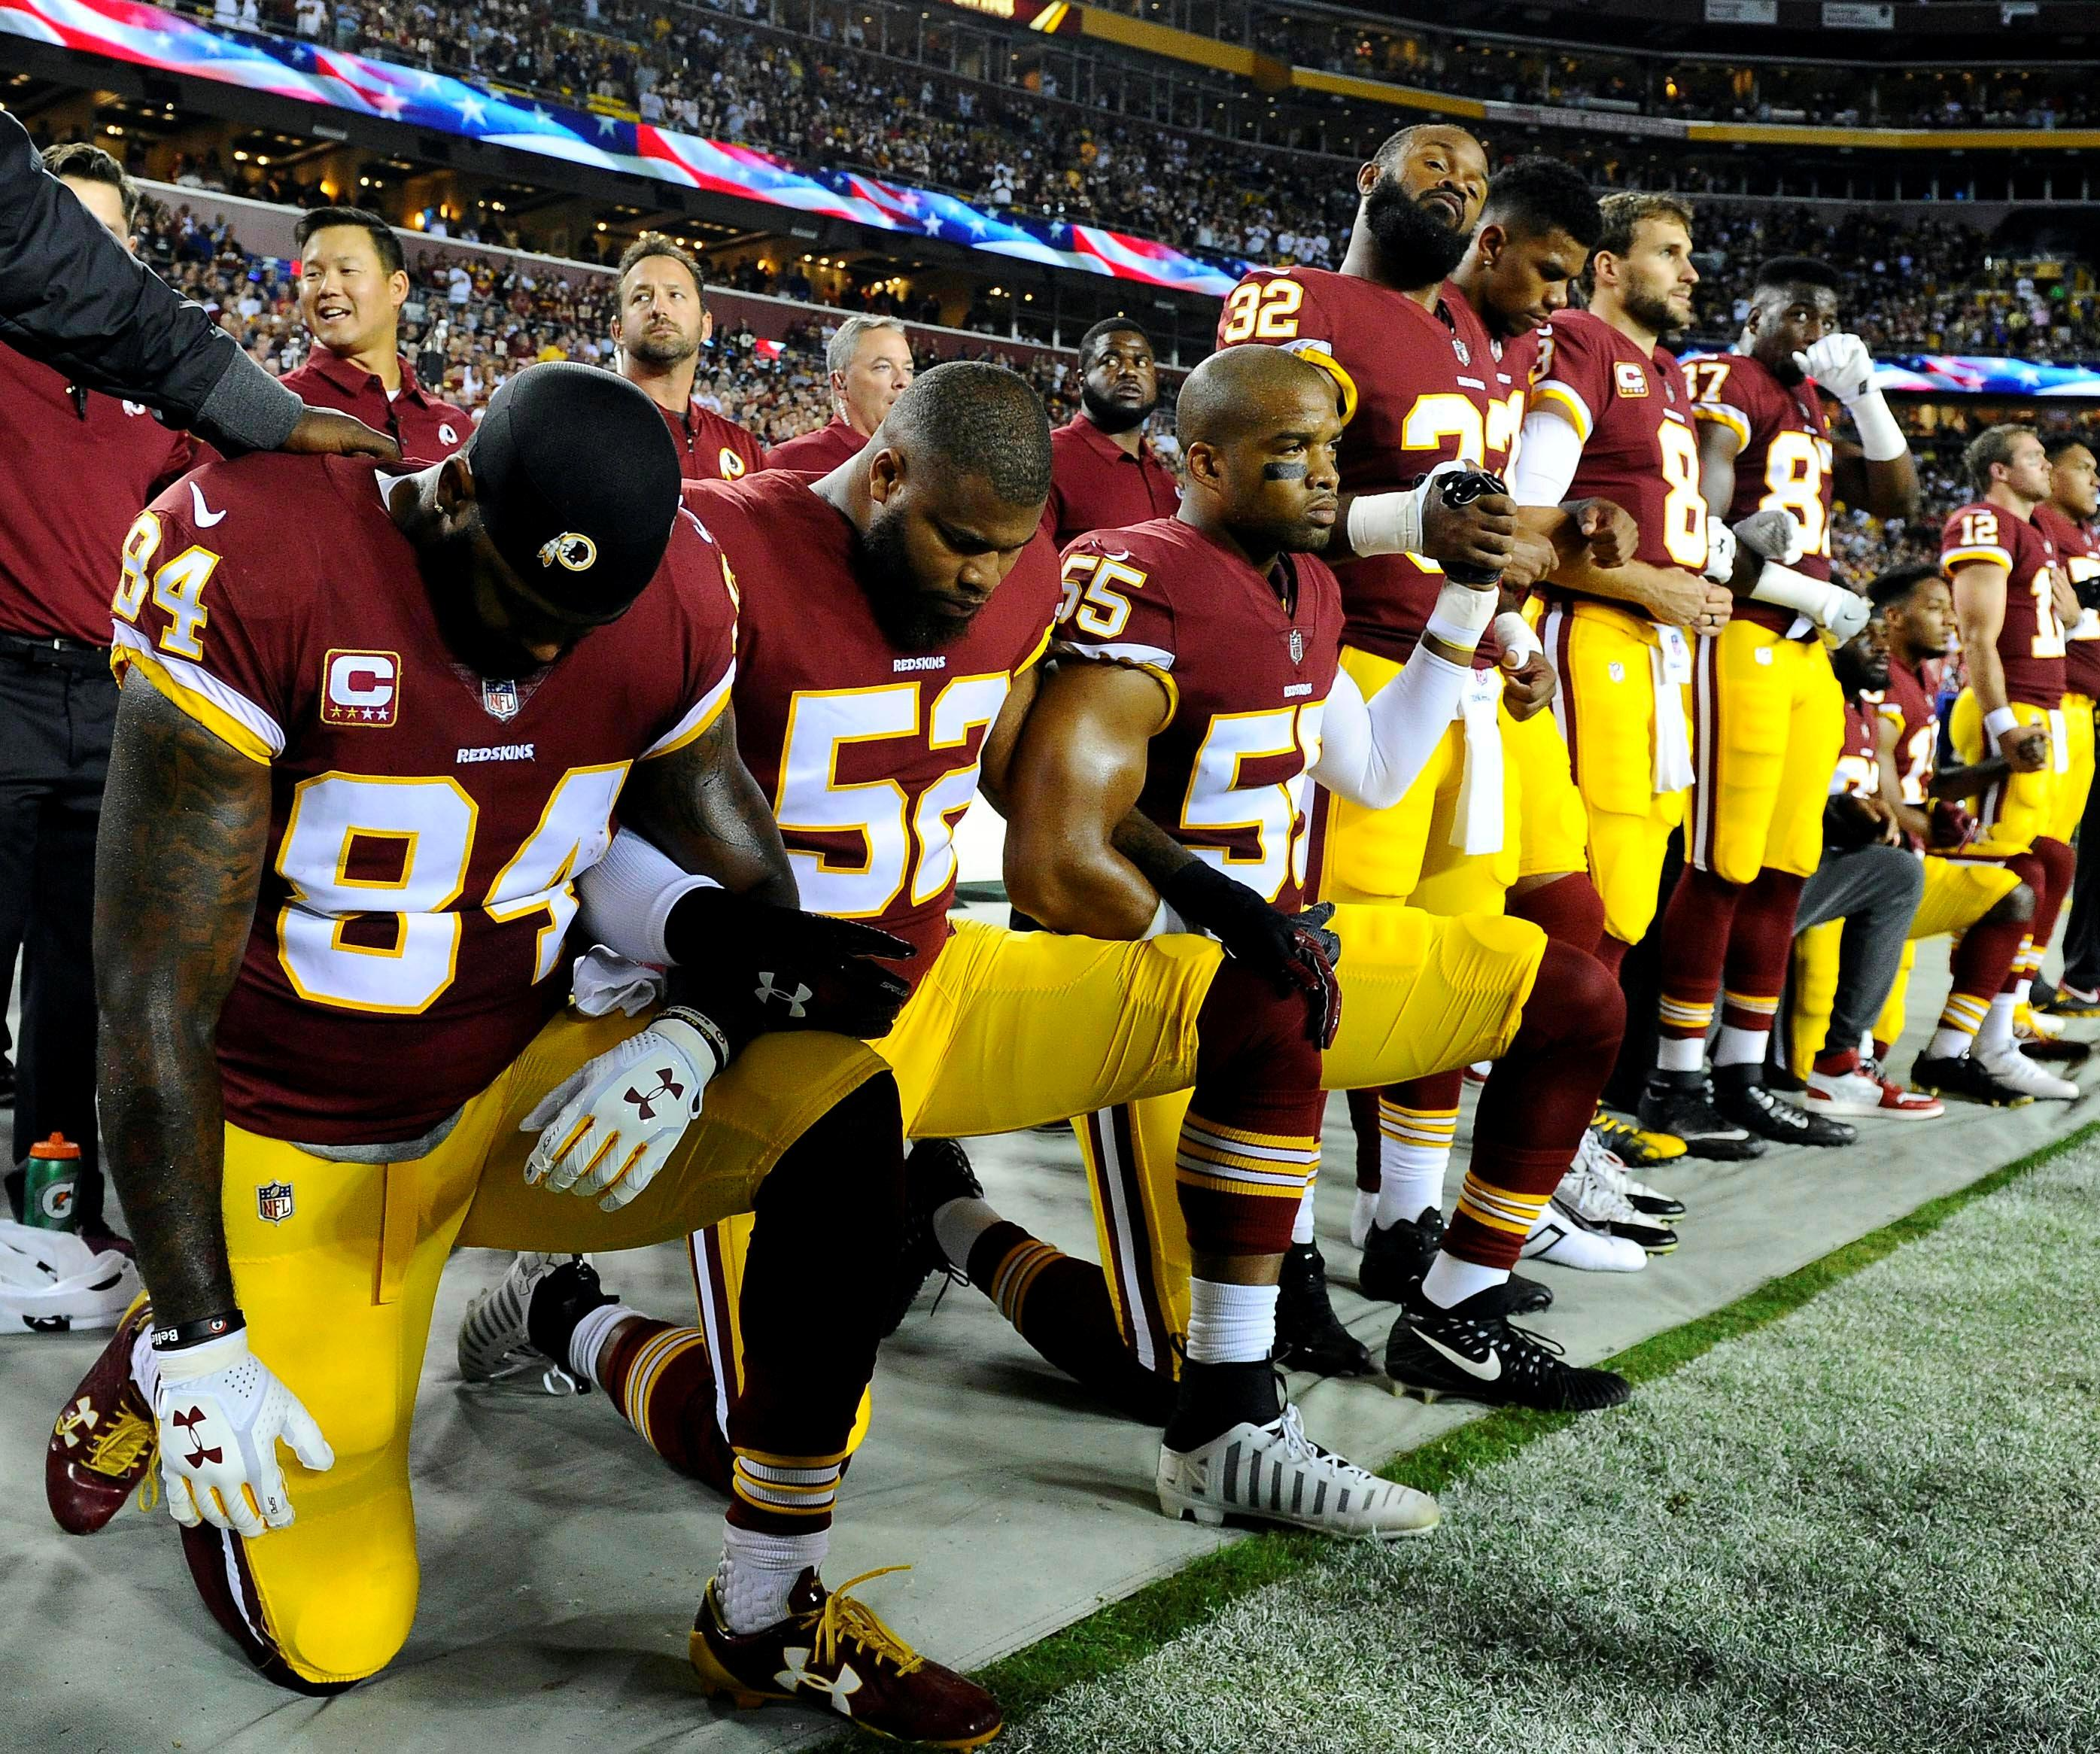 Nfl On Sirius >> How Nfl Sponsors Are Reacting To Trump S War On Nfl